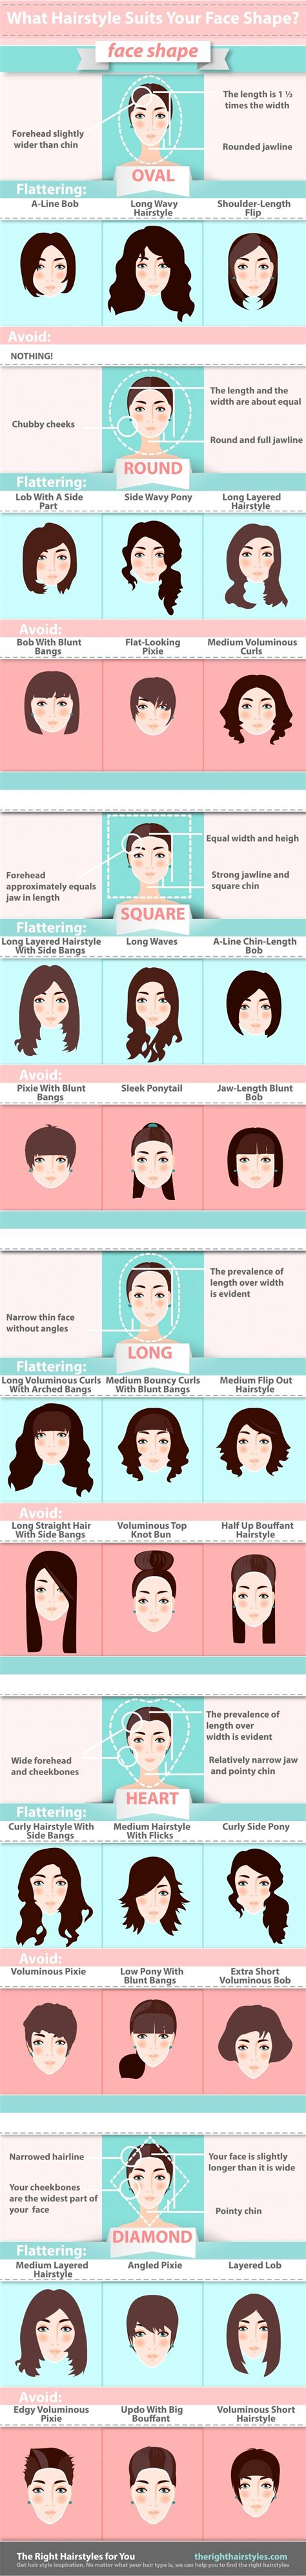 haircut based on your shape what haircuts you should avoid based on your face shape